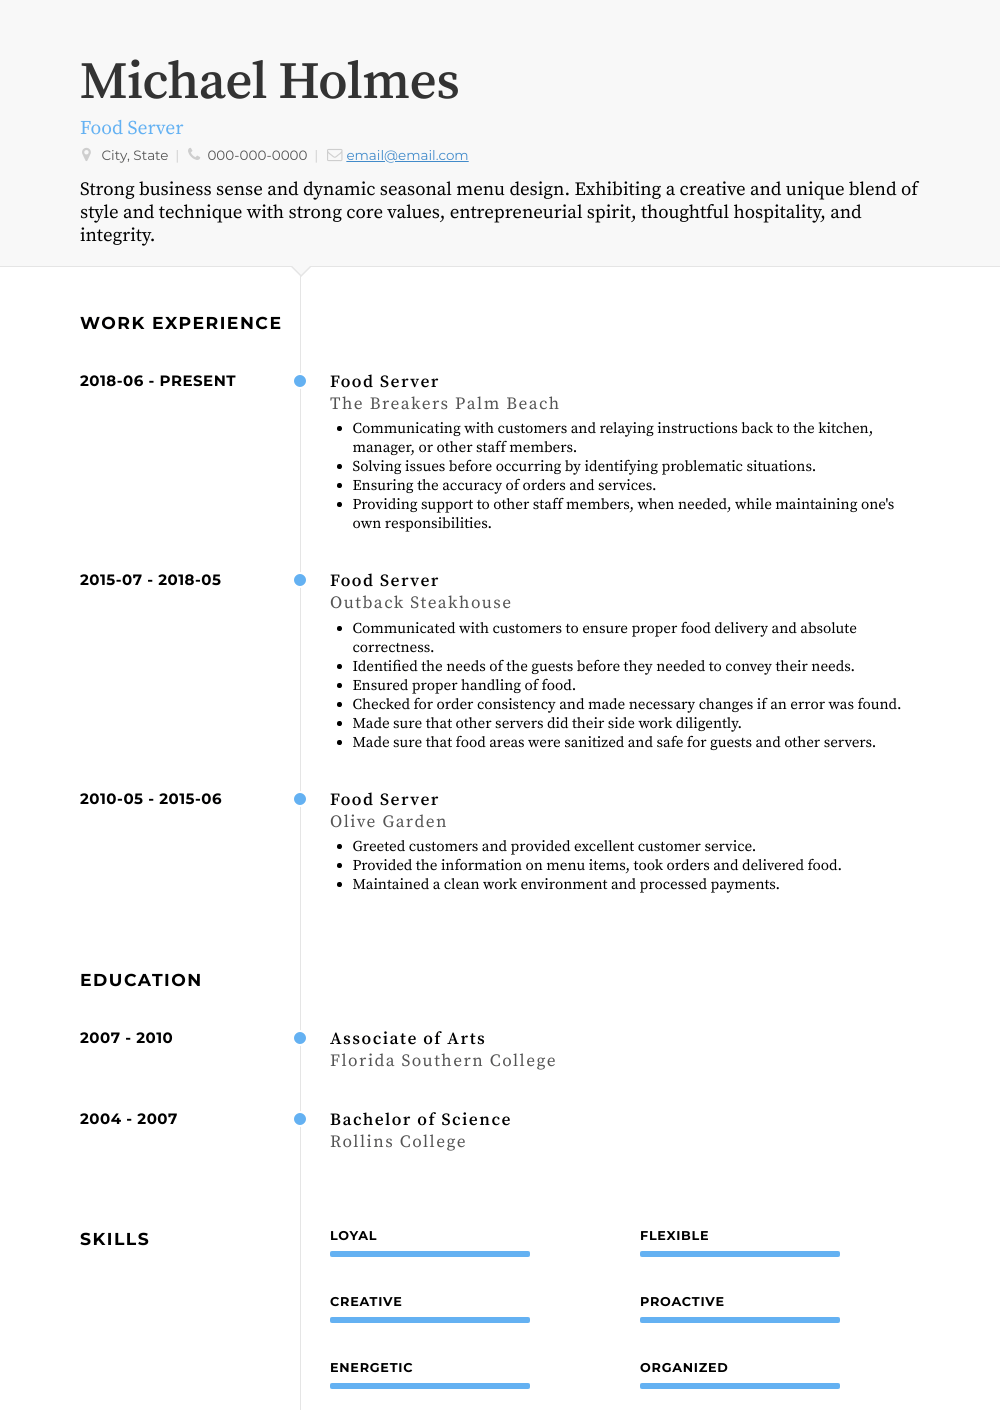 Food Server Resume Sample and Template